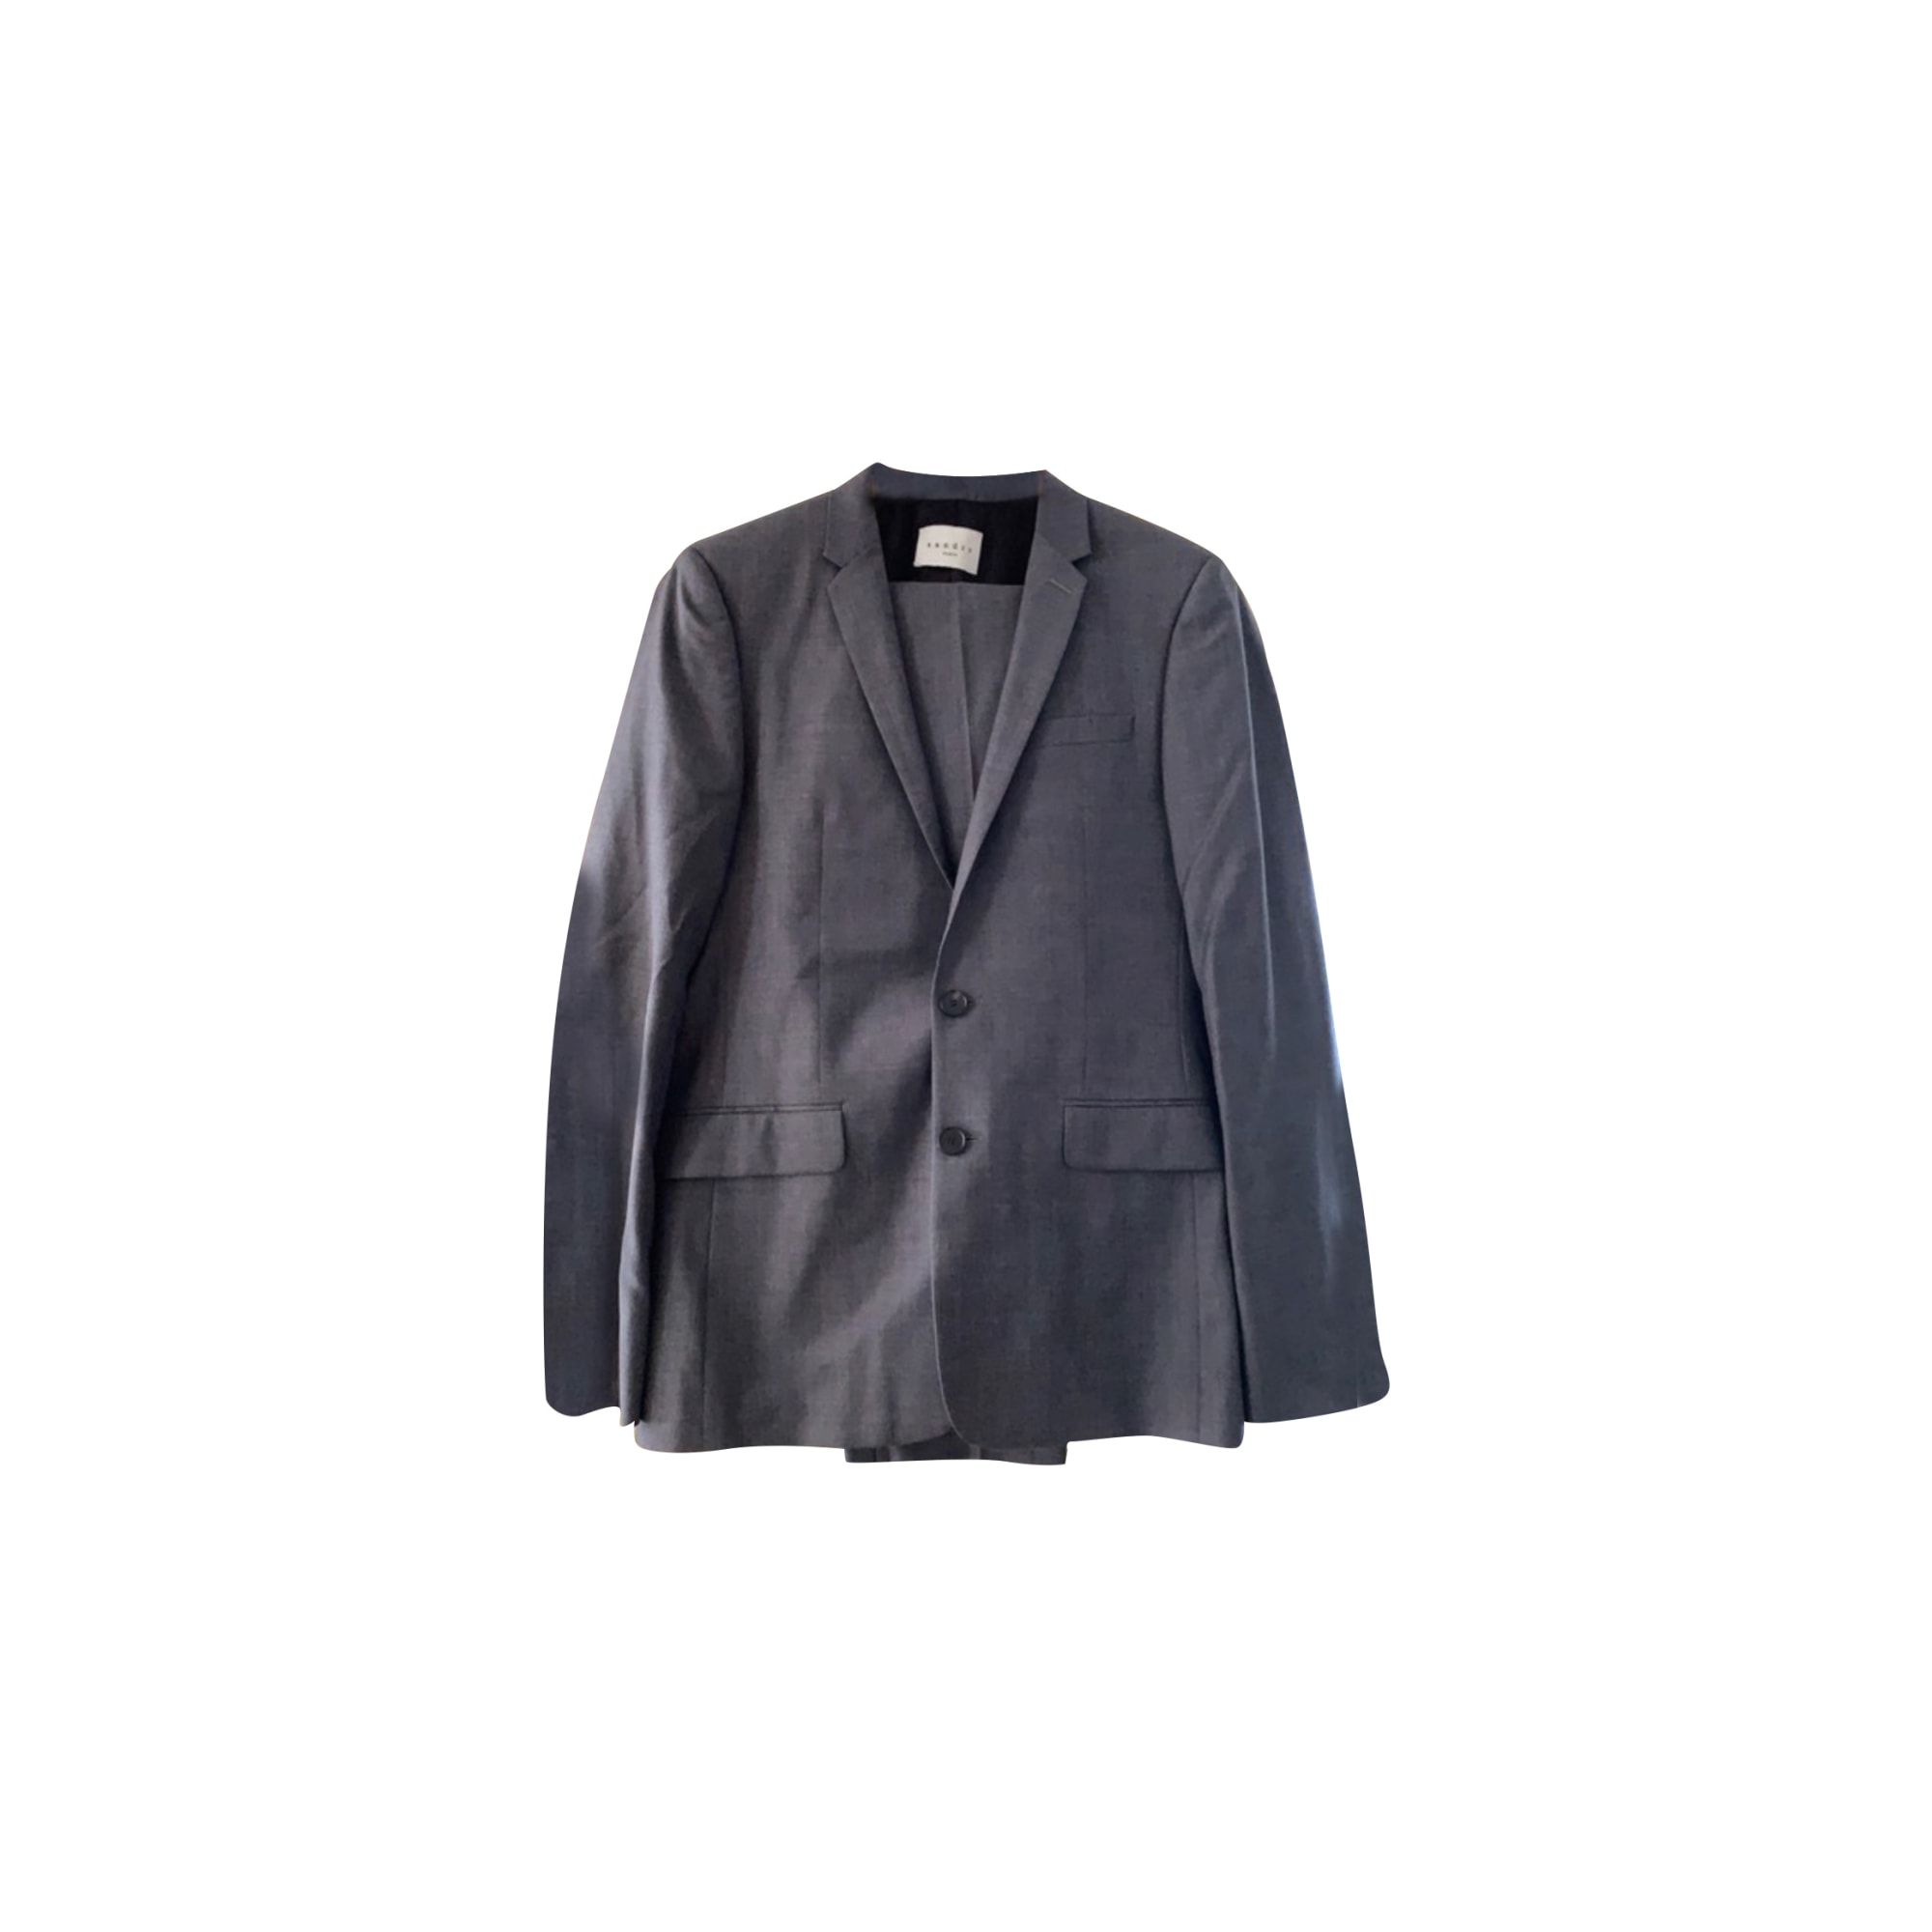 Costume complet SANDRO Gris, anthracite